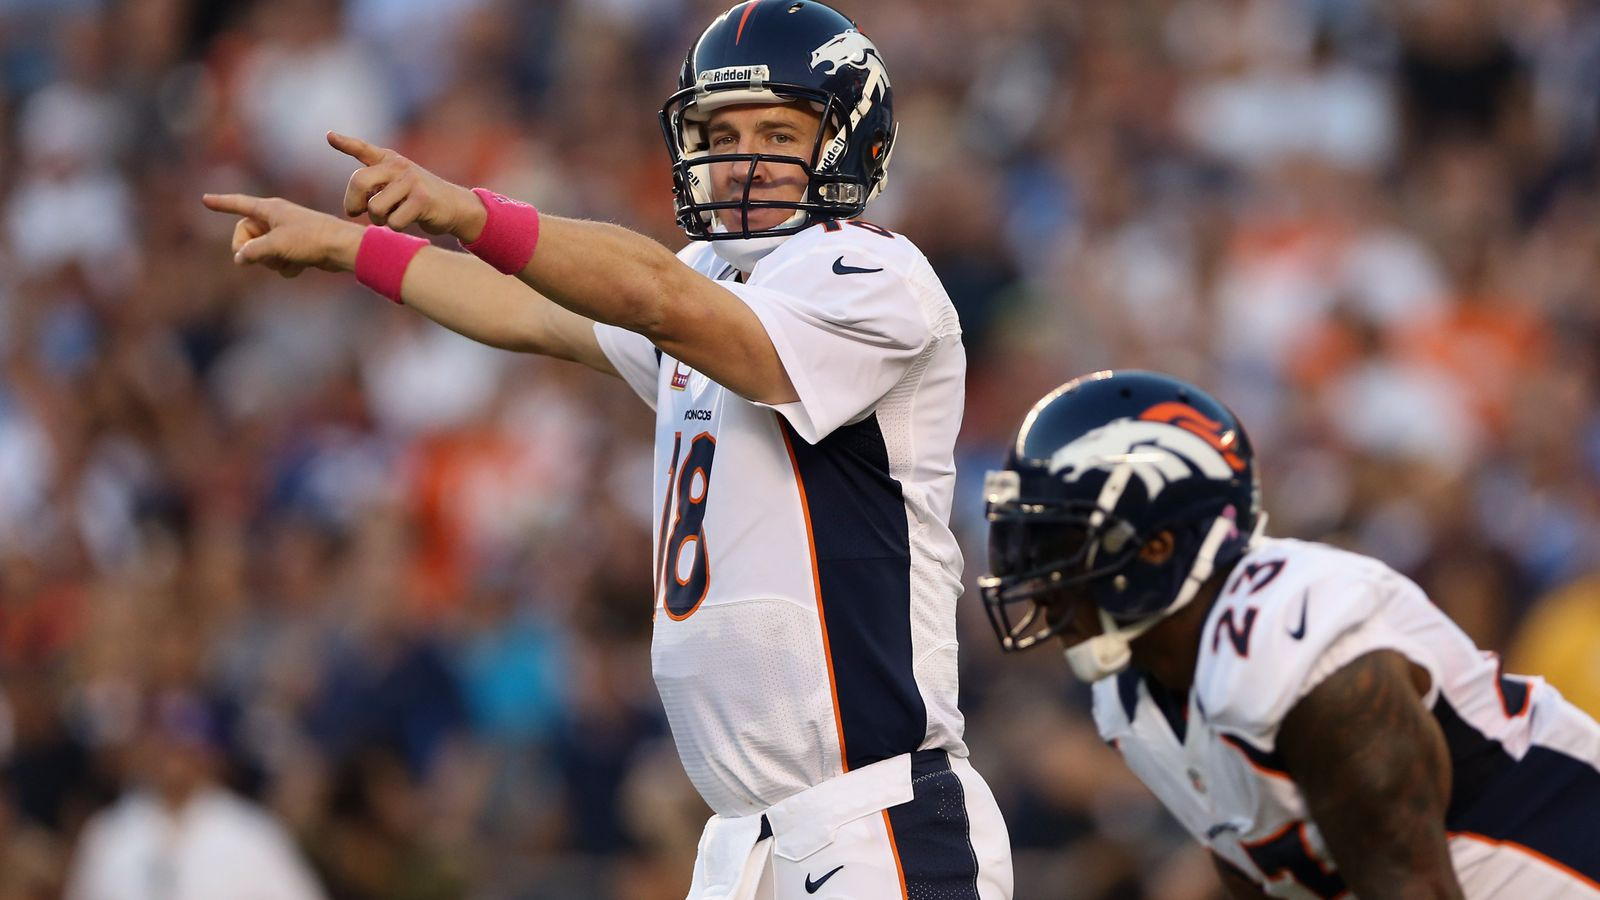 Broncos Vs Chargers Score Denver Scores 35 In A Row